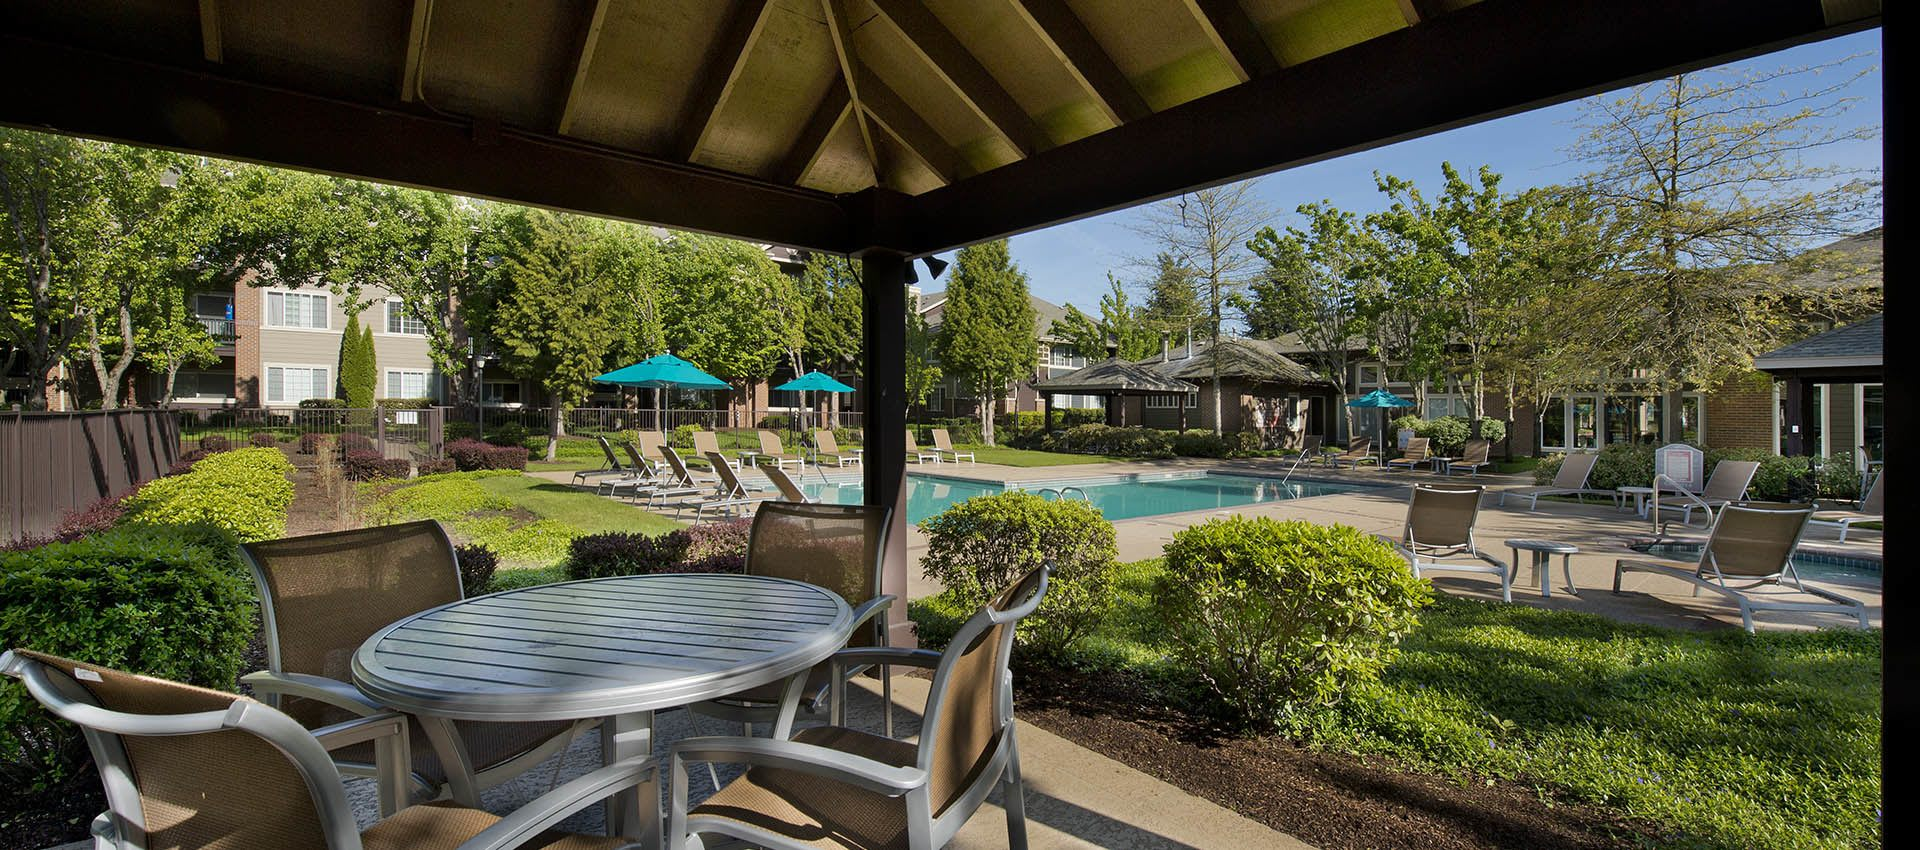 Gazebo at apartments in Hillsboro, OR